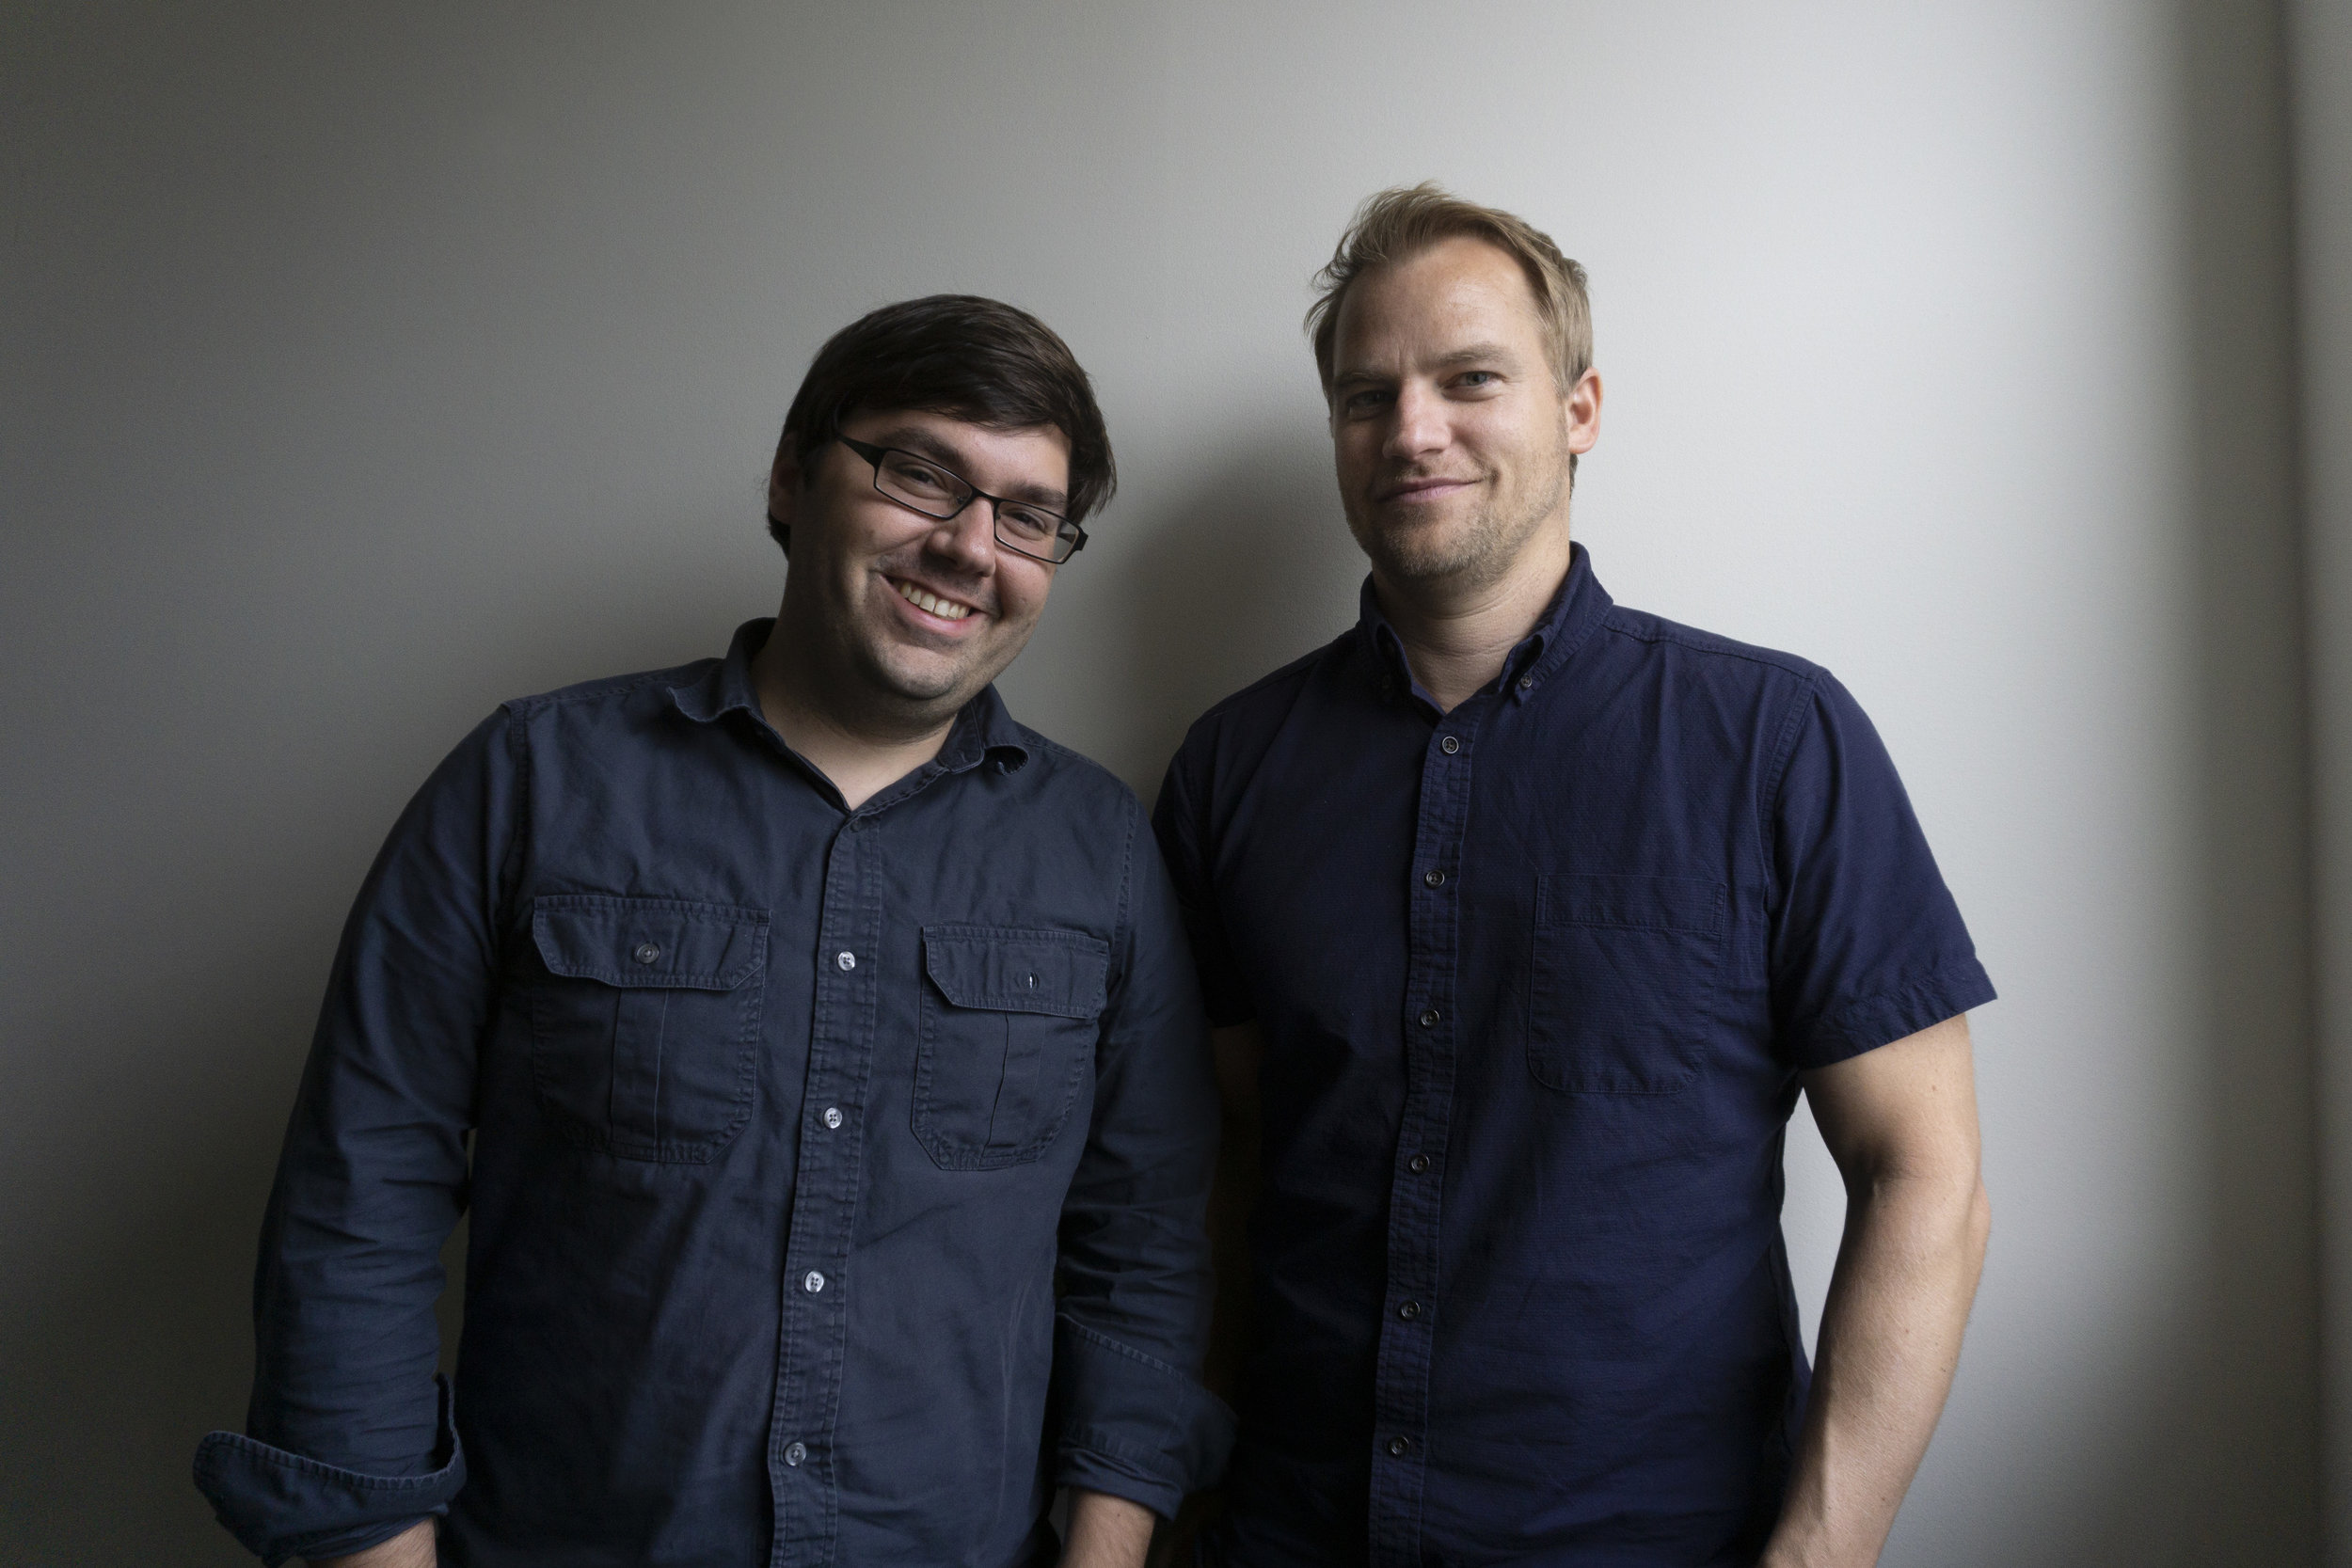 Justin Bajan (left) and Dustin Artz recently launched Familiar Creatures creative agency.